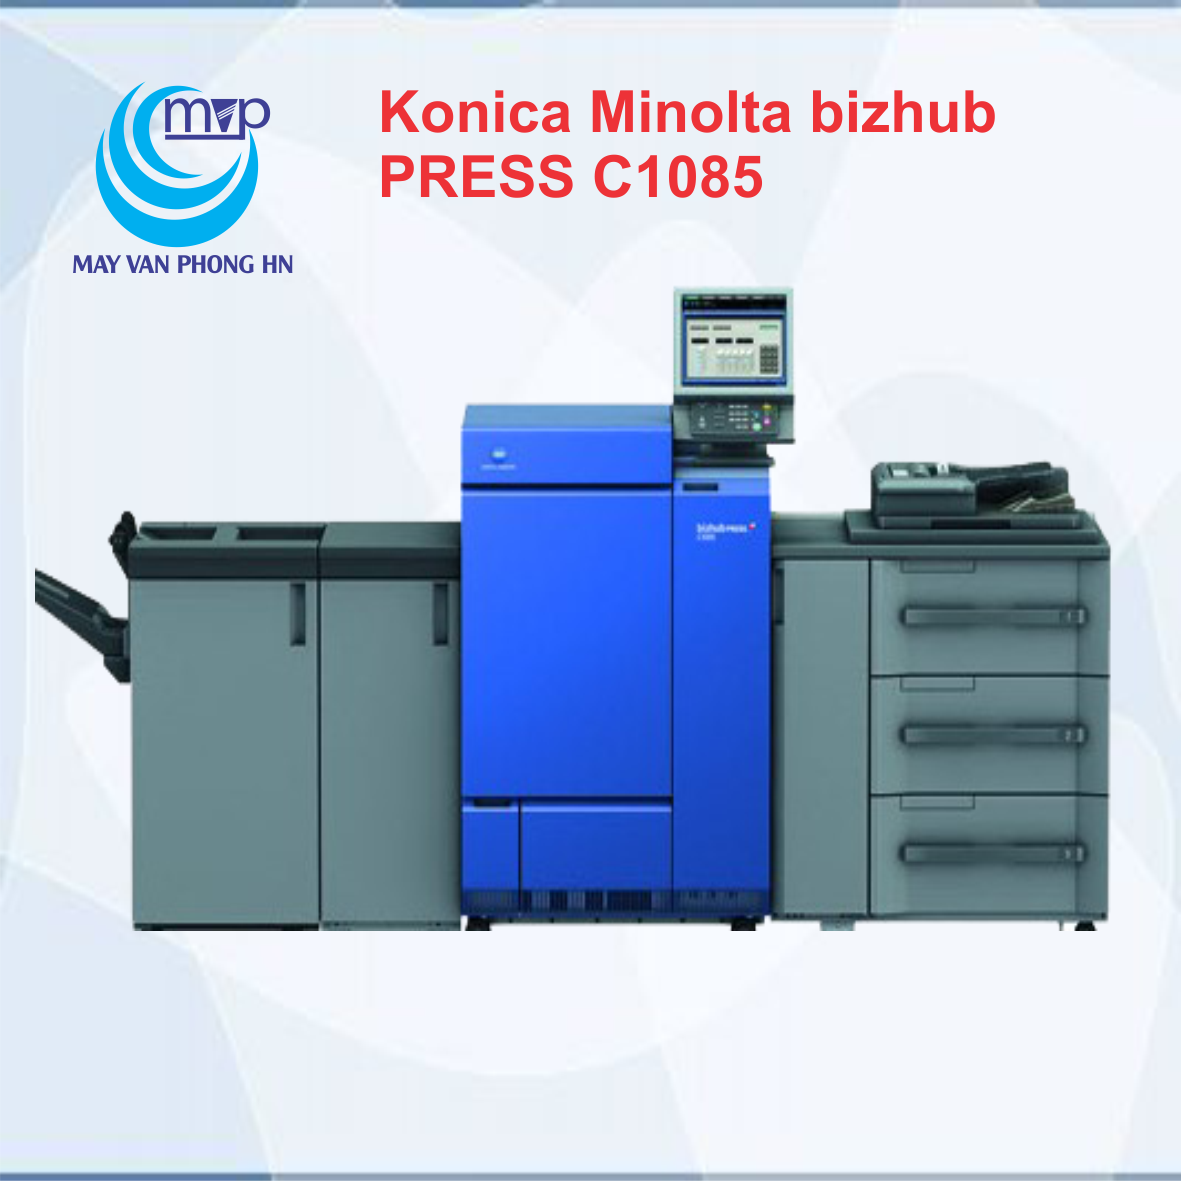 Konica Minolta Bizhub PRESS C1085